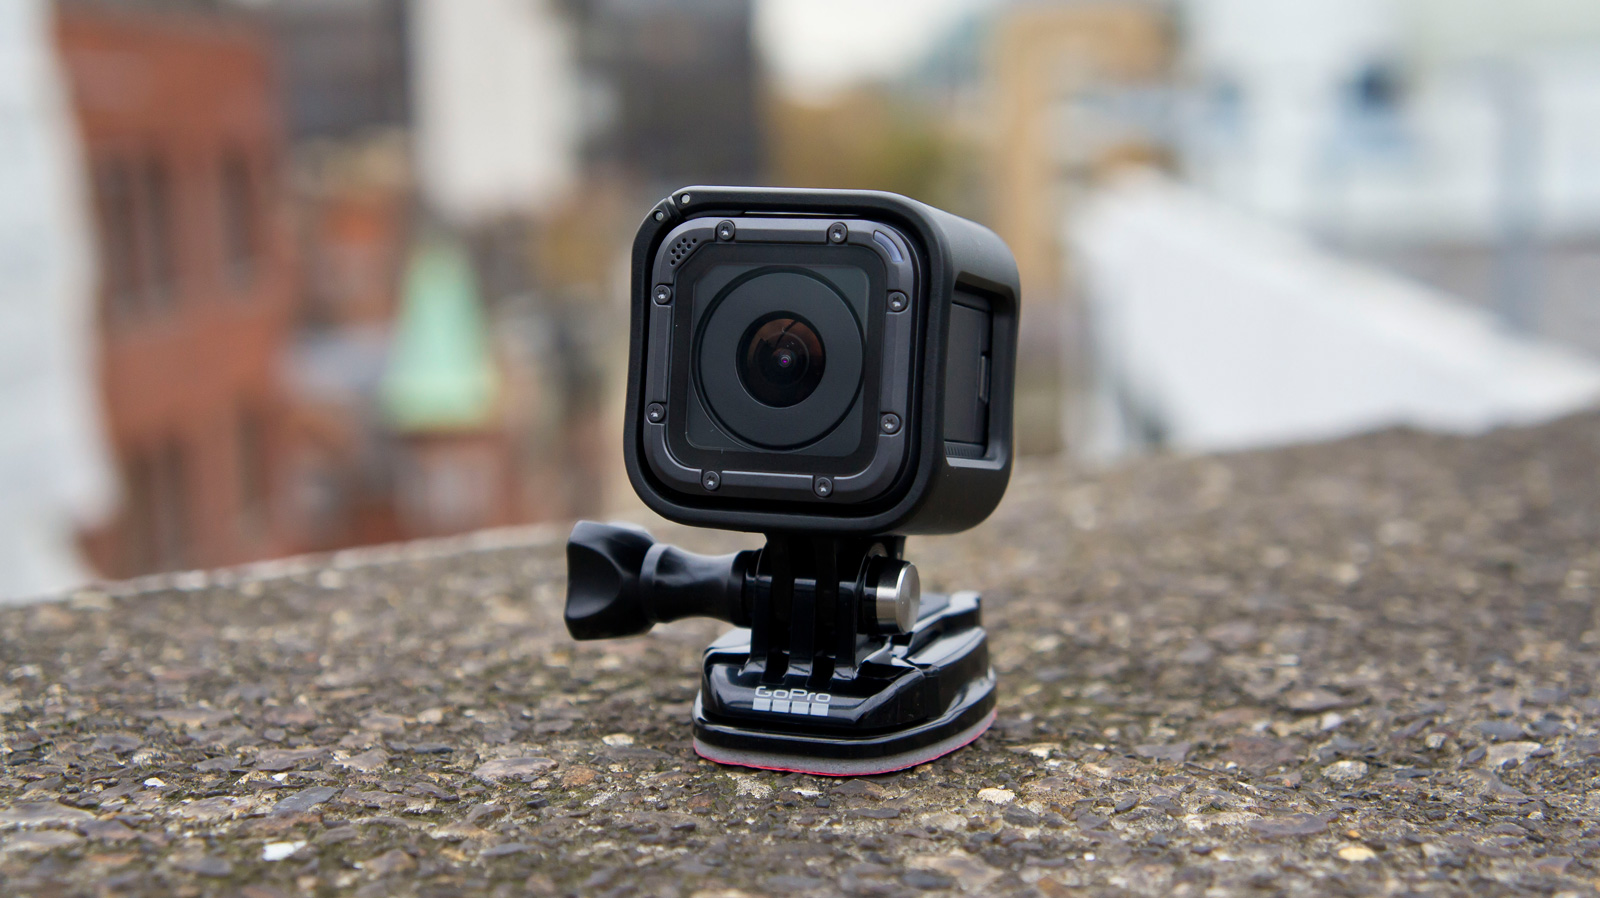 Image result for GoPro Hero Review: Great Midrange Action Camera